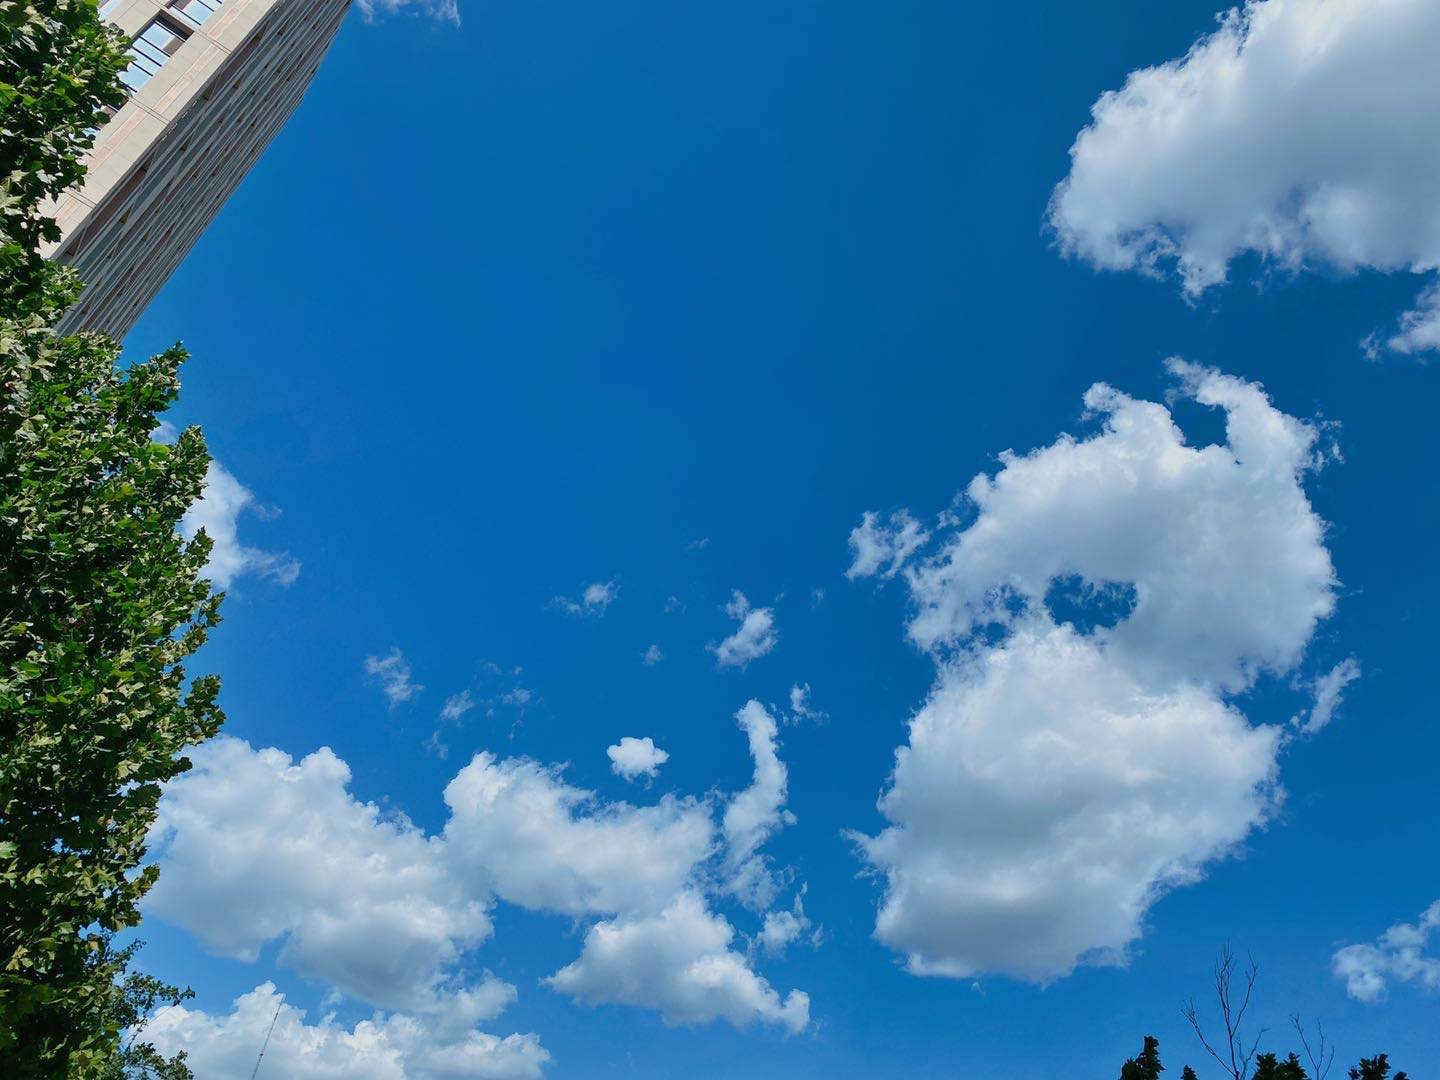 Blue sky and white clouds in Beijing